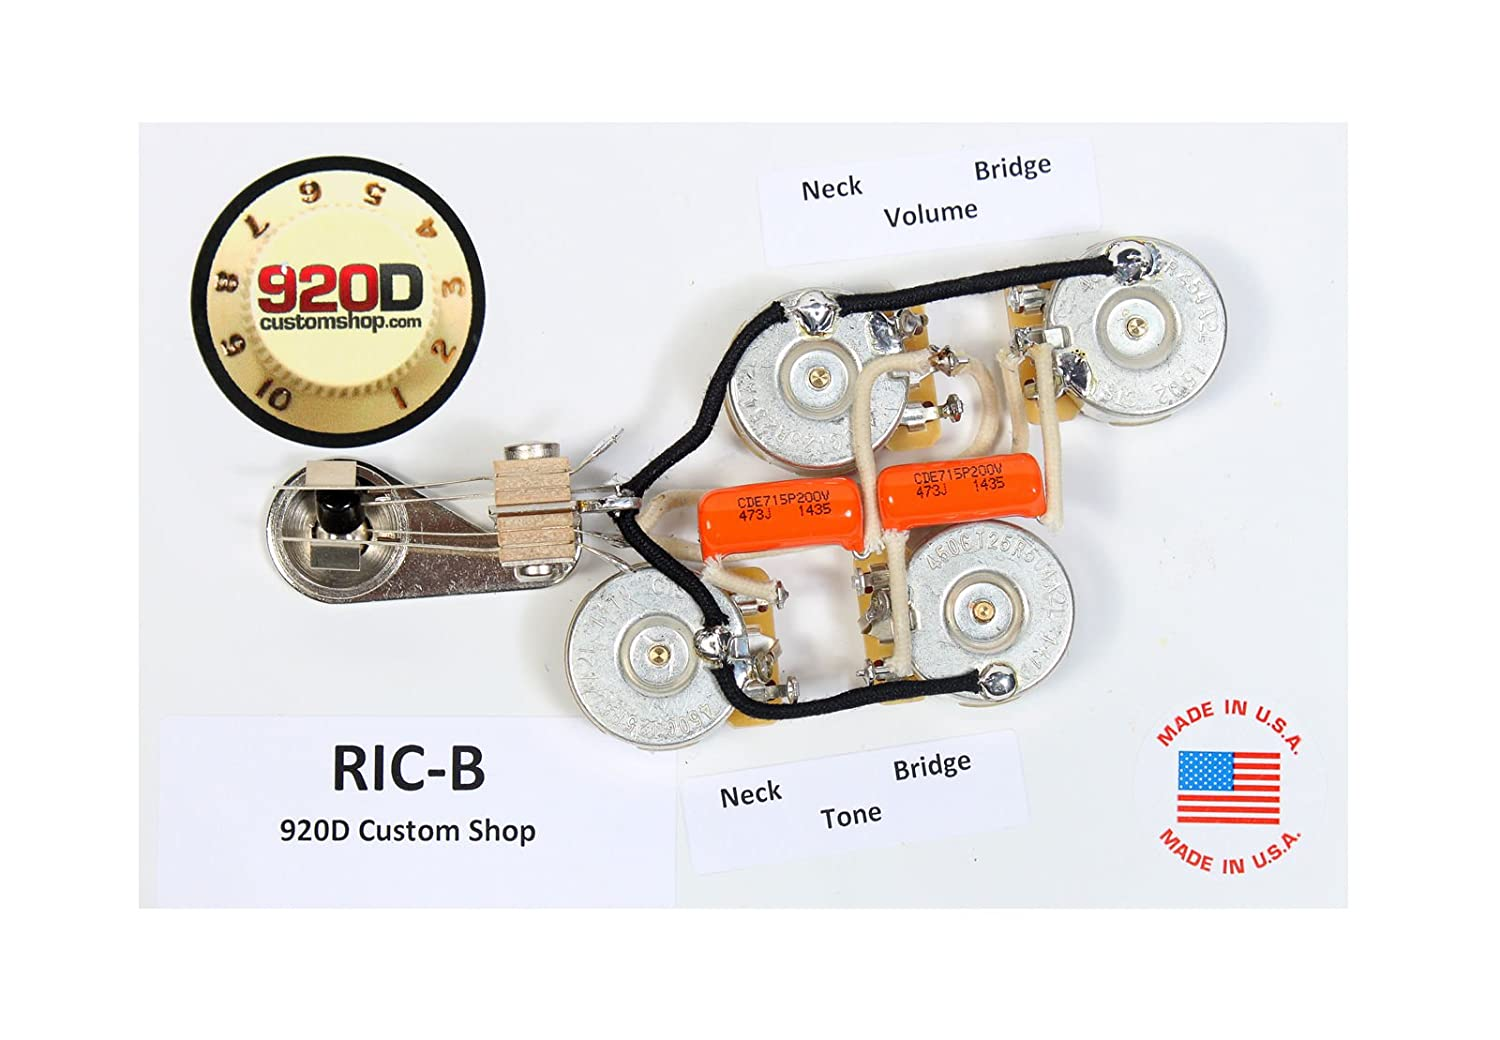 Amazon.com: Duncan SRB-1 Pickup Set for Rickenbacker Bass Guitar + 920D RIC-B  Wiring Harness: Musical Instruments